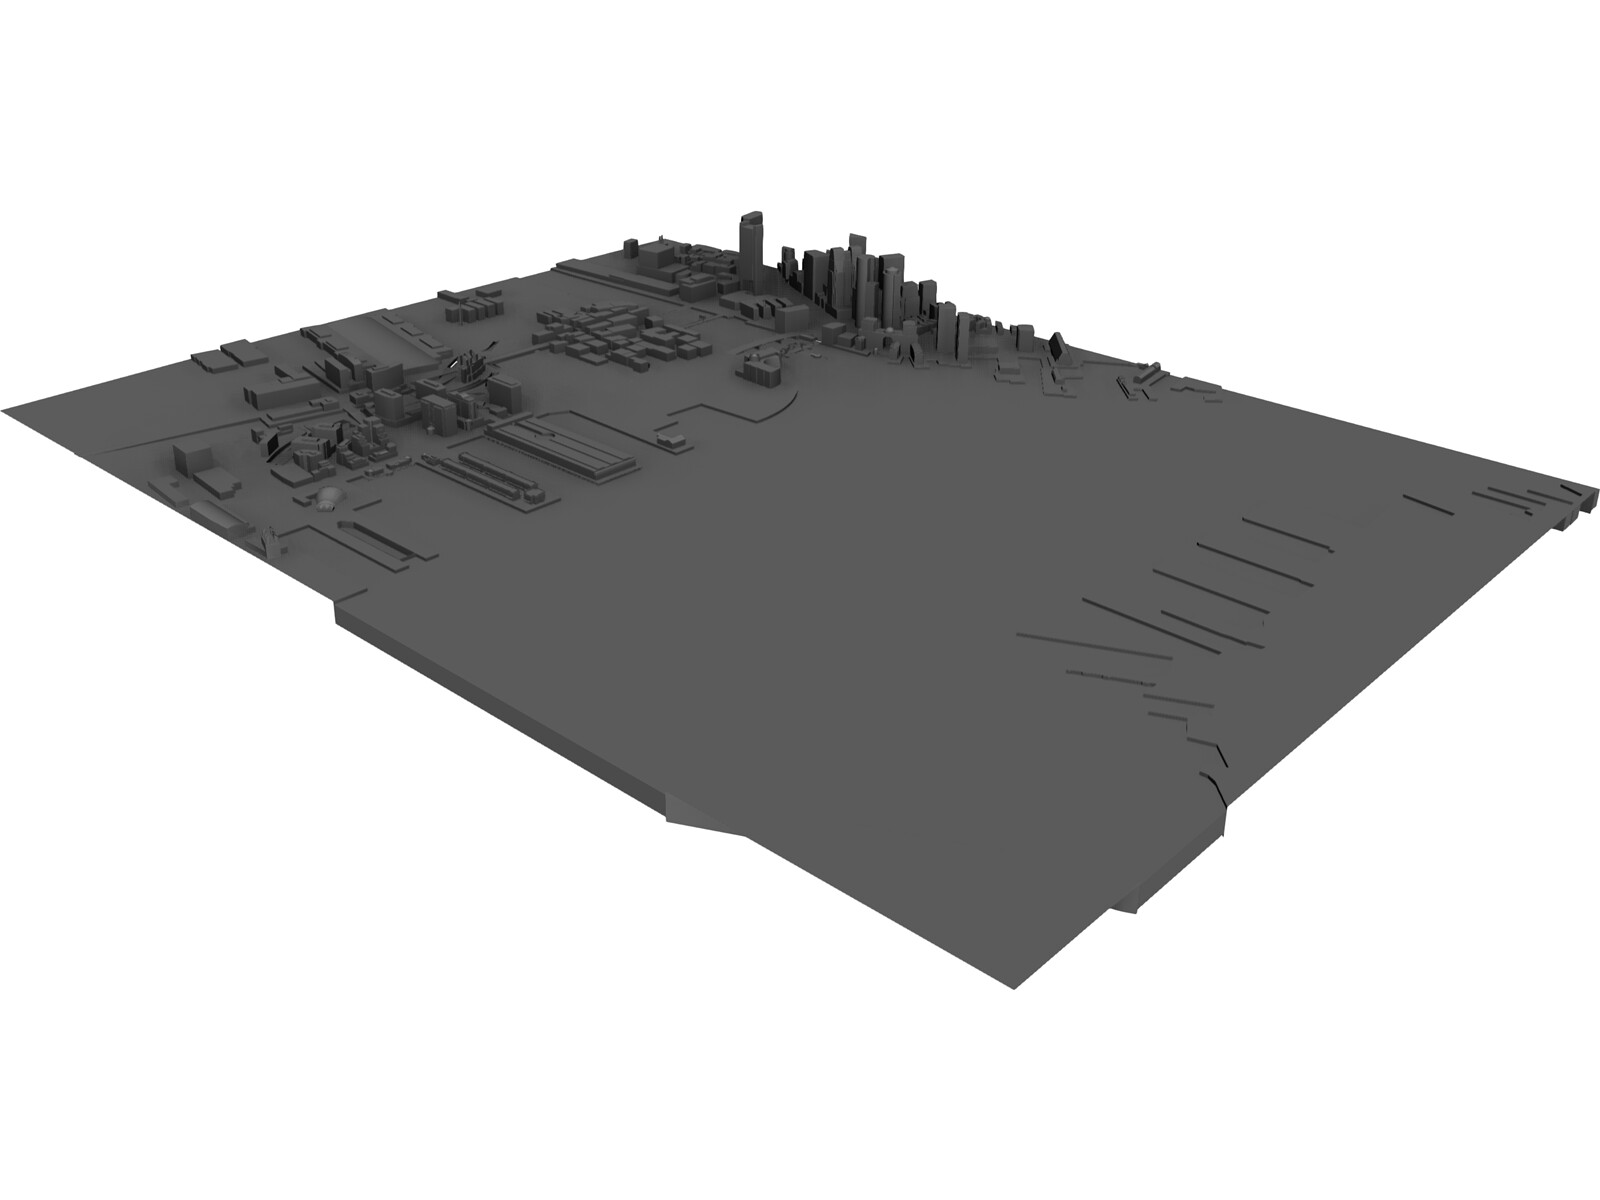 City Part Boston South 3D Model